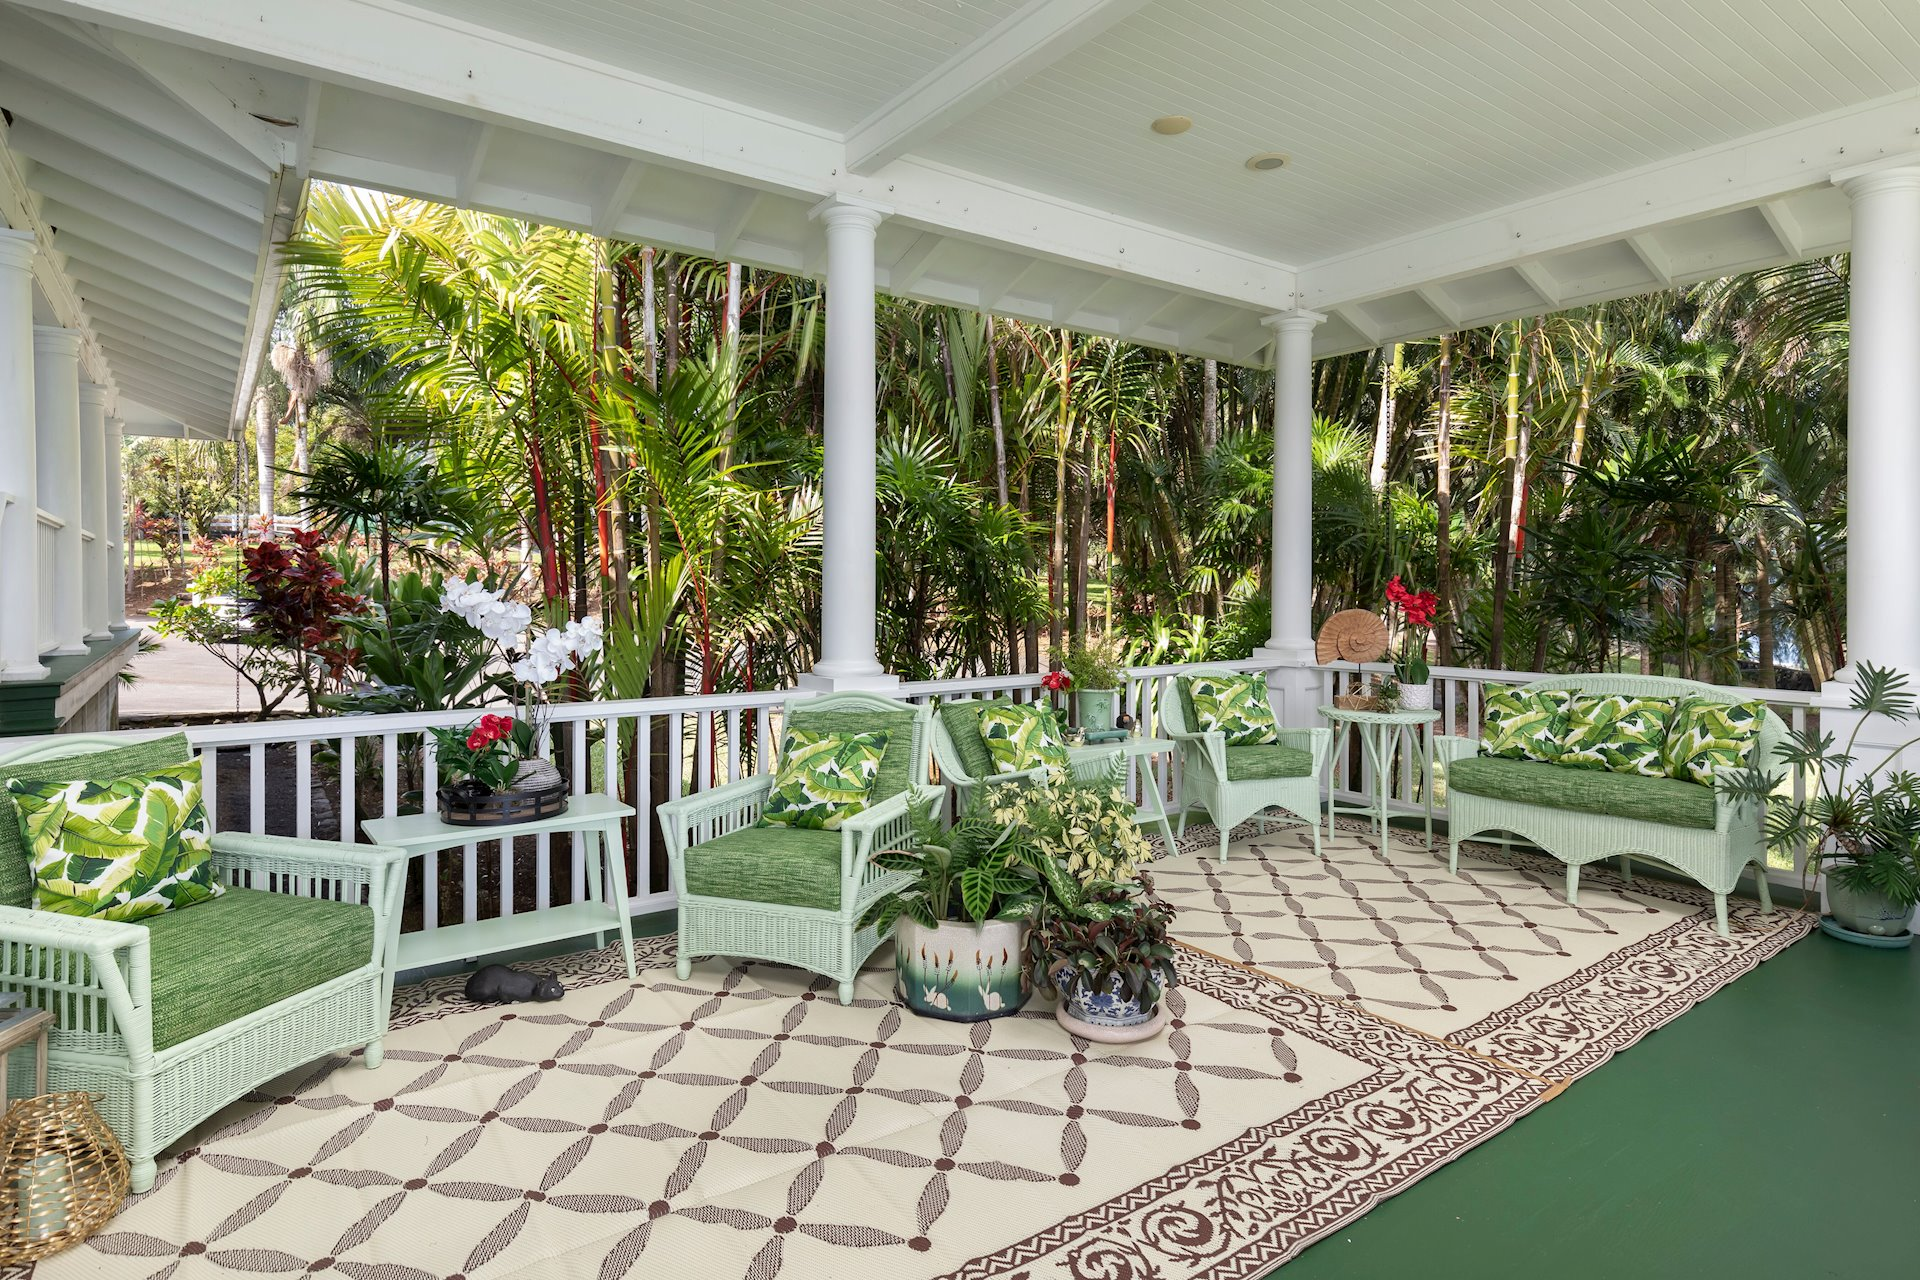 Huge garden and oceanfront old-fashioned verandas for family, private or public gatherings. Several private lanais are attached to many of the bedroom suites.